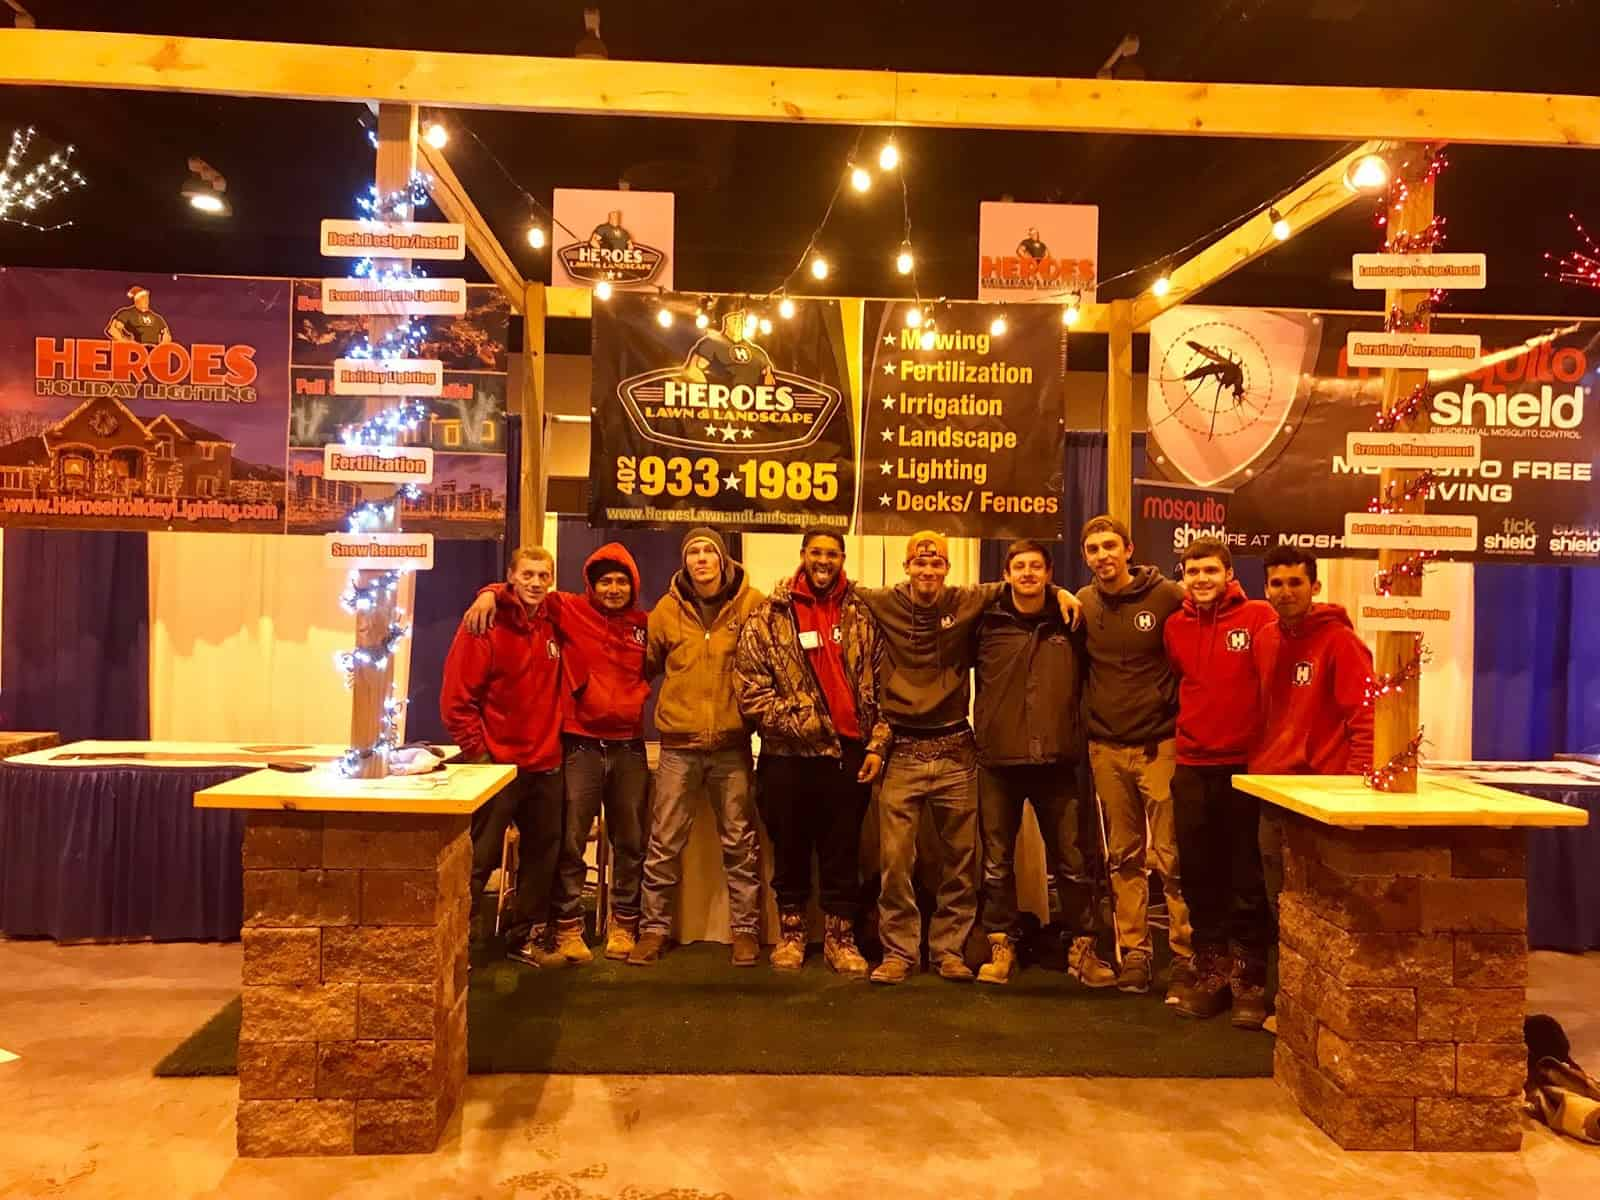 Landscaping Heroes in Nebraska that you can count on.